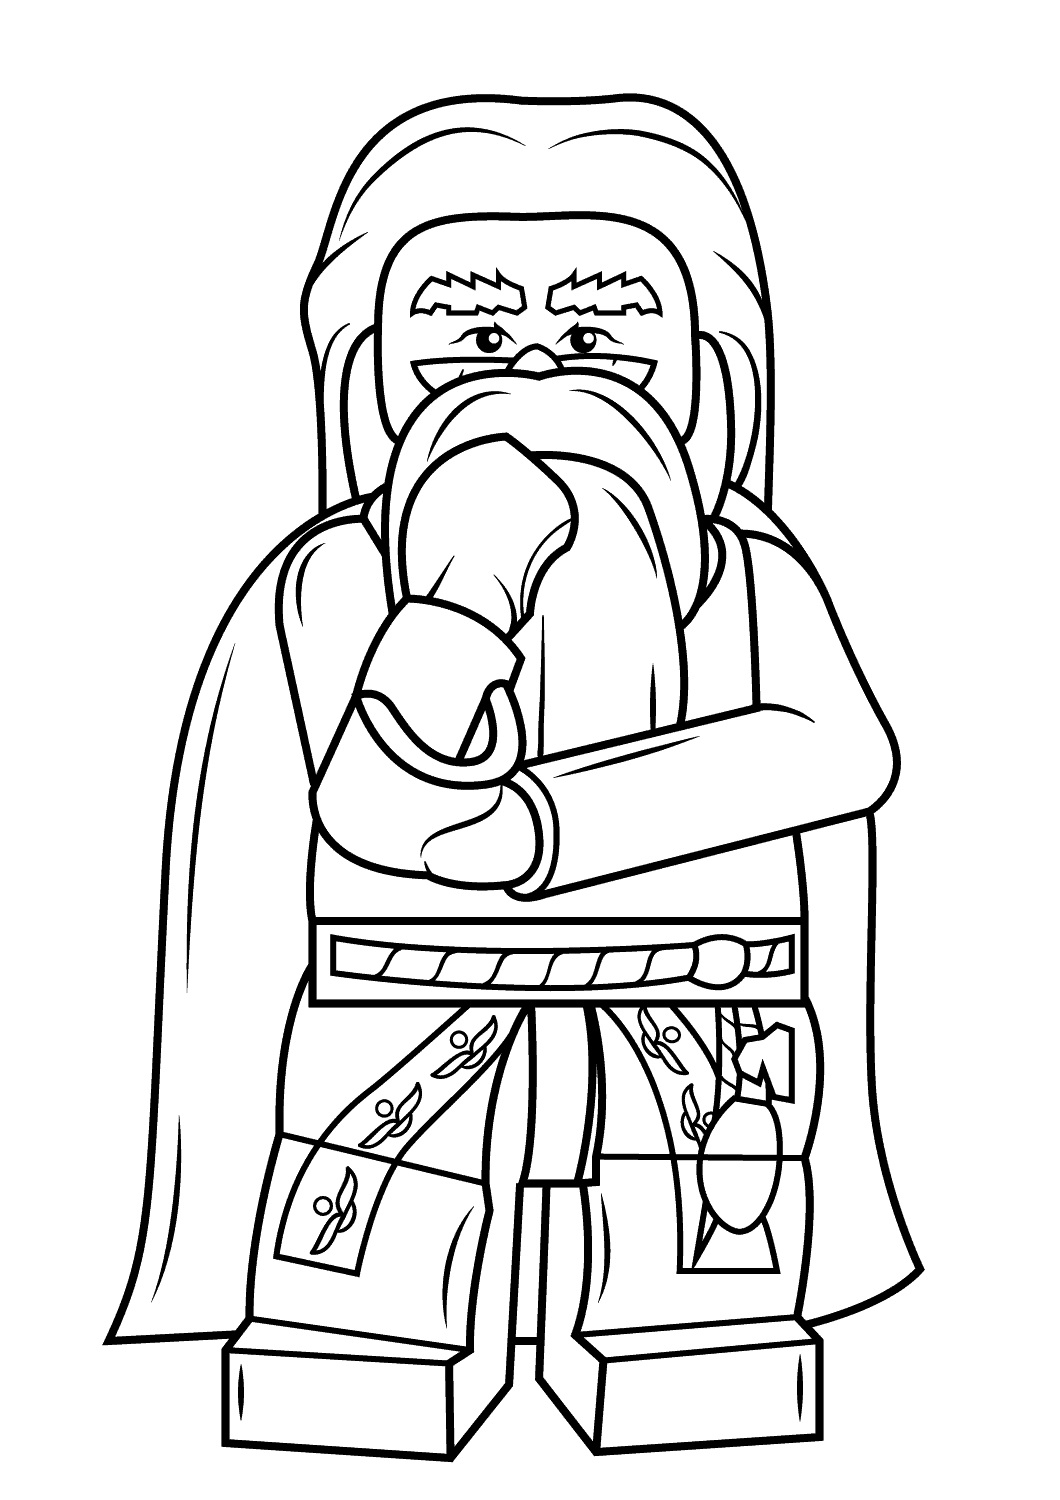 Lego Star Wars Clone Decorating Christmas Coloring Page ...